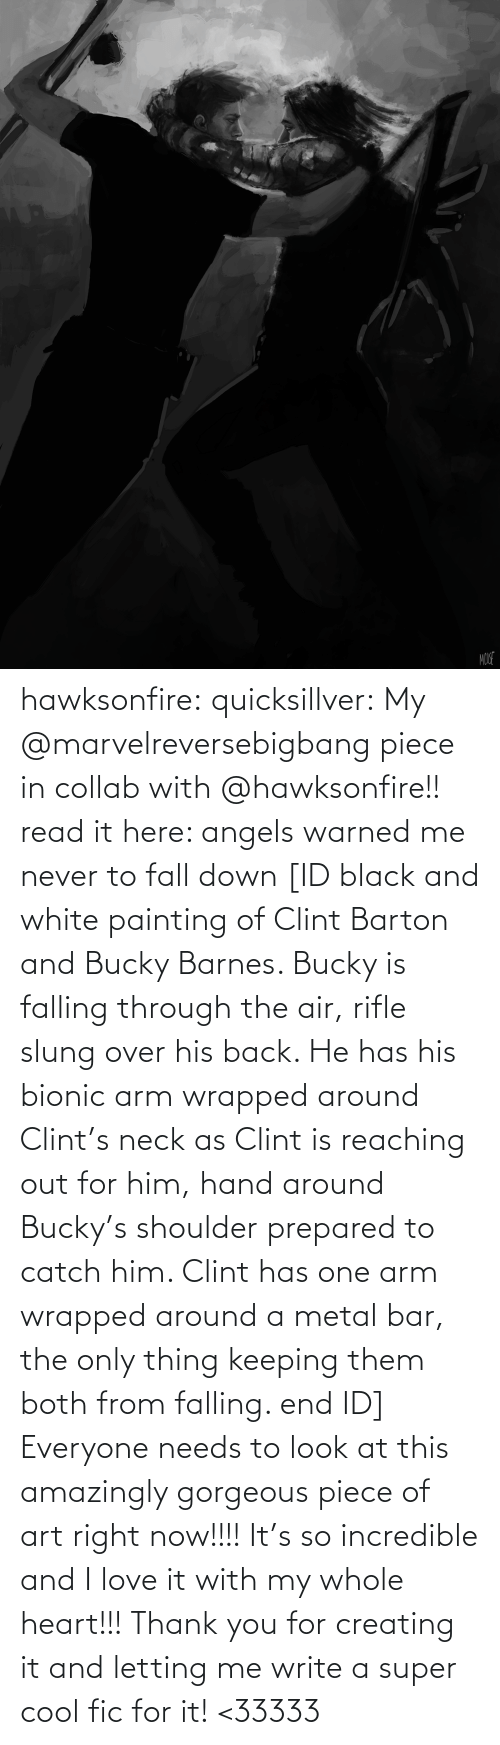 creating: MOUE hawksonfire:  quicksillver:  My @marvelreversebigbang piece in collab with @hawksonfire!! read it here: angels warned me never to fall down [ID black and white painting of Clint Barton and Bucky Barnes. Bucky is falling through the air, rifle slung over his back. He has his bionic arm wrapped around Clint's neck as Clint is reaching out for him, hand around Bucky's shoulder prepared to catch him. Clint has one arm wrapped around a metal bar, the only thing keeping them both from falling. end ID]  Everyone needs to look at this amazingly gorgeous piece of art right now!!!! It's so incredible and I love it with my whole heart!!! Thank you for creating it and letting me write a super cool fic for it! <33333